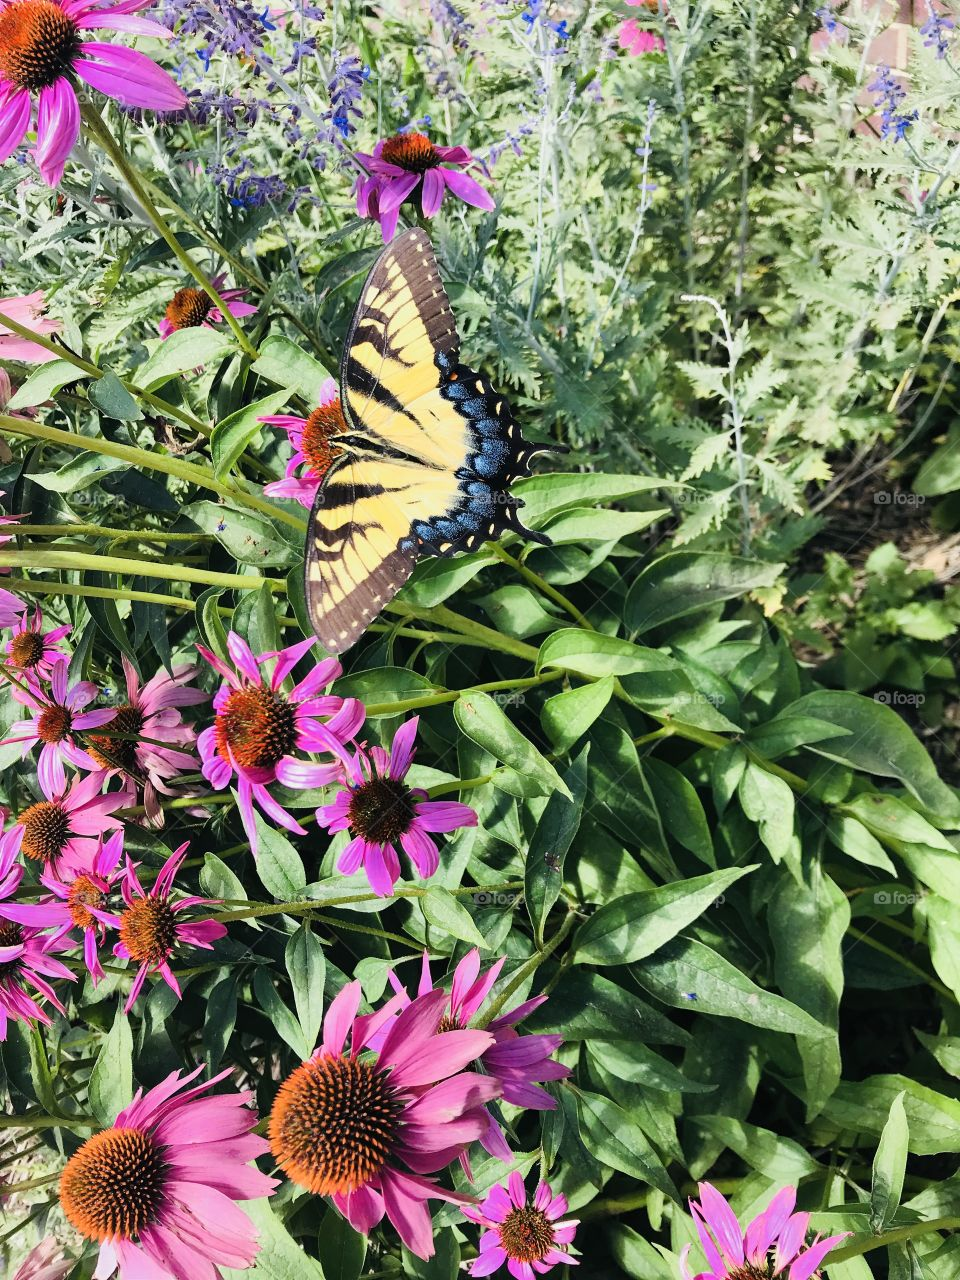 Gorgeous butterfly perched in a plant enjoying some nectar. Gorgeous yellow and blue markings really make this butterfly stand out!